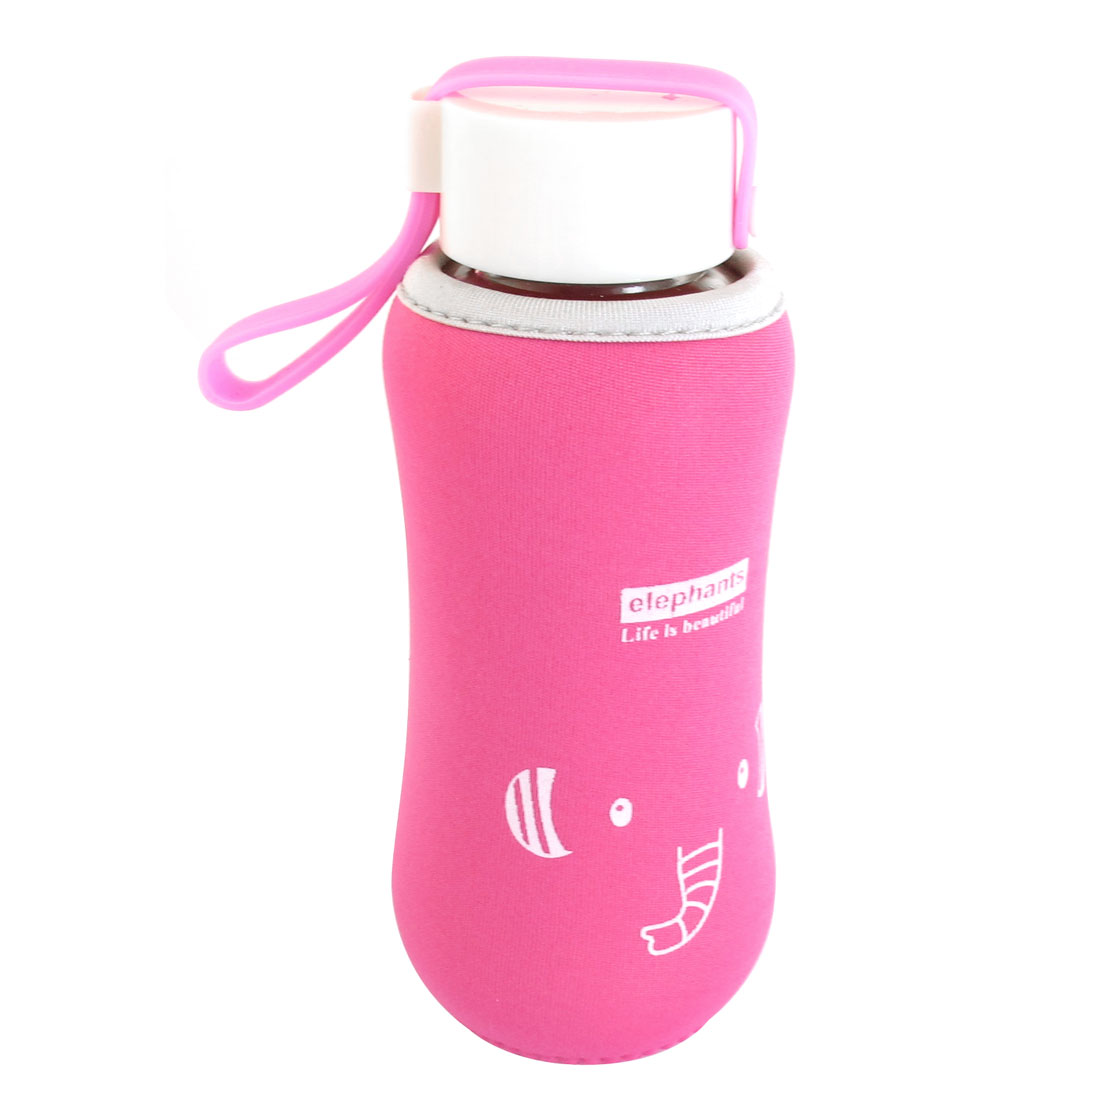 250ML Travel Mug Pink Nylon Protect Sleeve Shatterproof Hand Portable Water Bottle Glass Cup